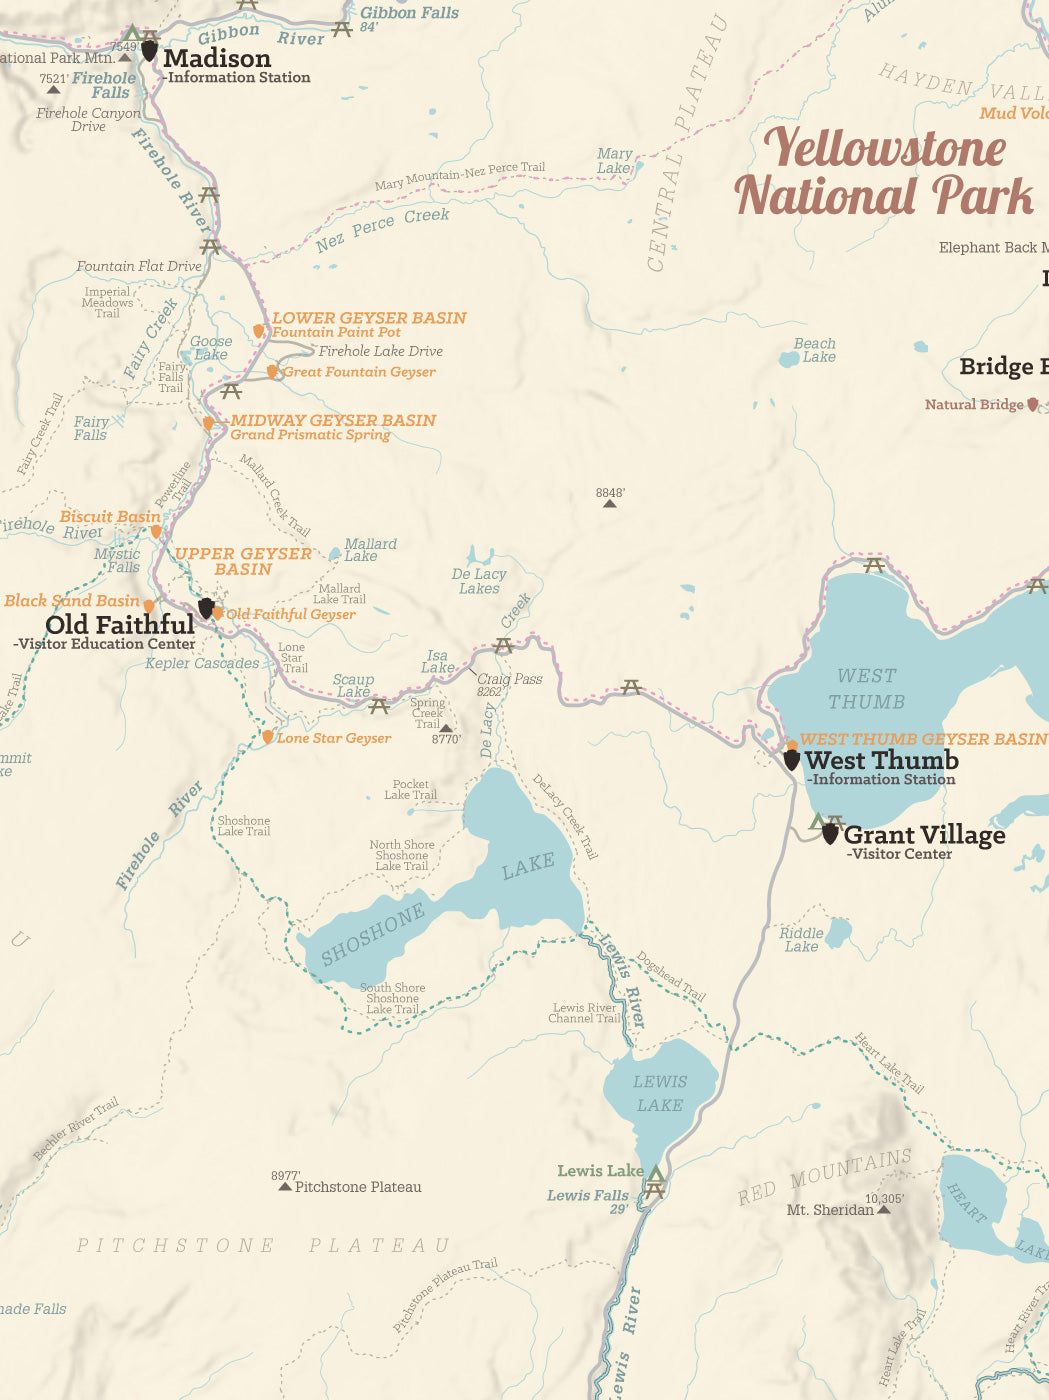 Yellowstone National Park Map 18x24 Poster on sawtooth national forest road map, national park to park highway map, bridger teton national forest road map, denali national park and preserve road map, wyoming road map, yellowstone geyser map, manufacturing by state map, pawnee national grasslands road map, detailed idaho road map, wyoming state map, gallatin national forest road map, yellowstone river old map, helena national forest road map, utah road map, black hills national forest road map, west yellowstone road map, kisatchie national forest road map, yellowstone driving map, kings canyon national park road map, north yellowstone map,